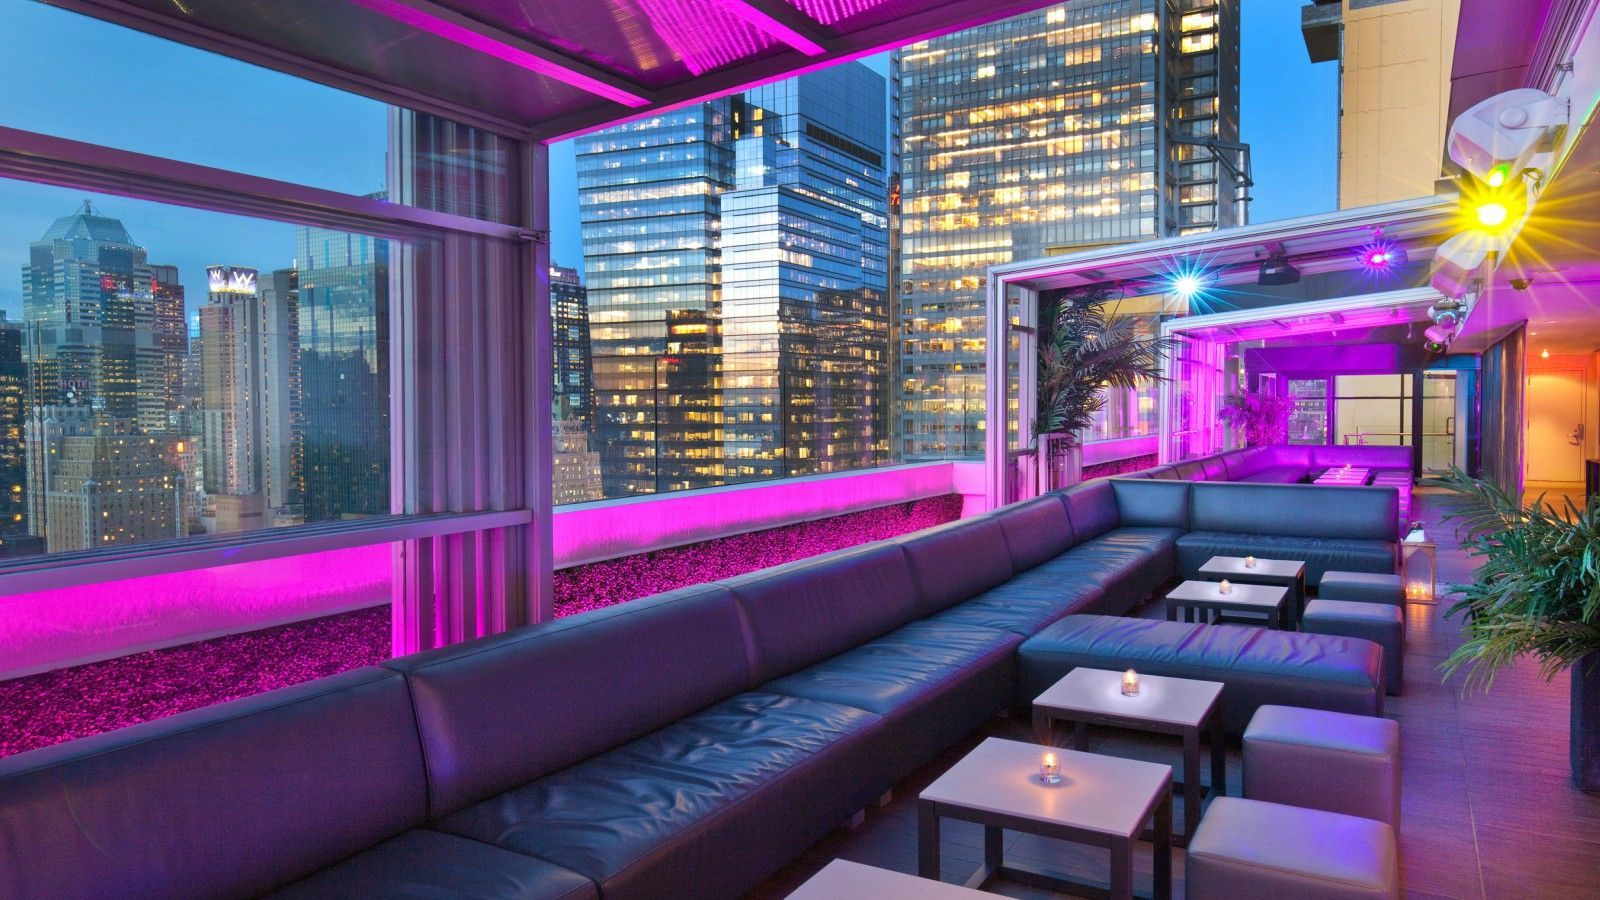 Dj nyse at skyroom rooftop friday tickets fri mar 2 for 10 river terrace nyc